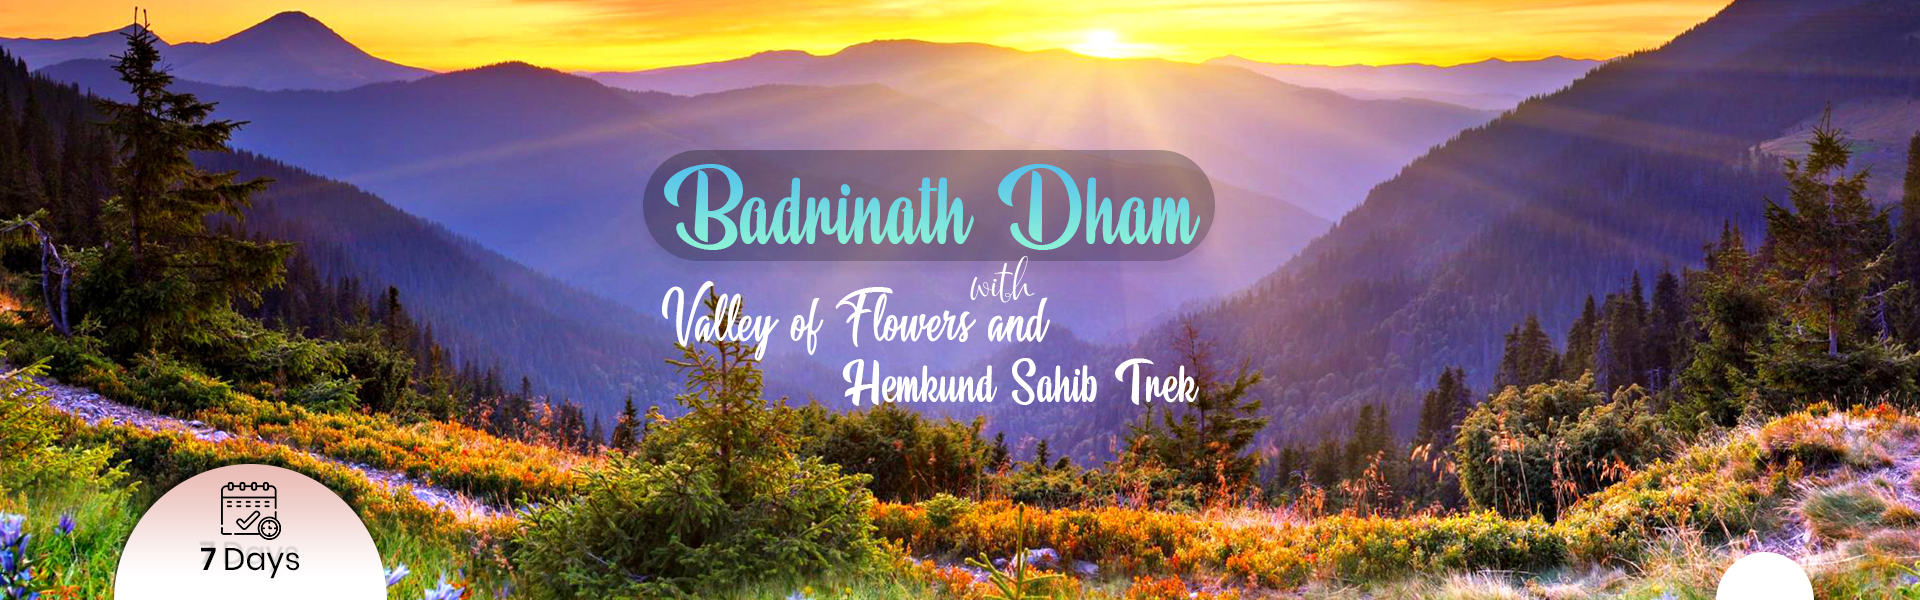 Badrinath dham with valley of Flowers and Hemkund Sahib